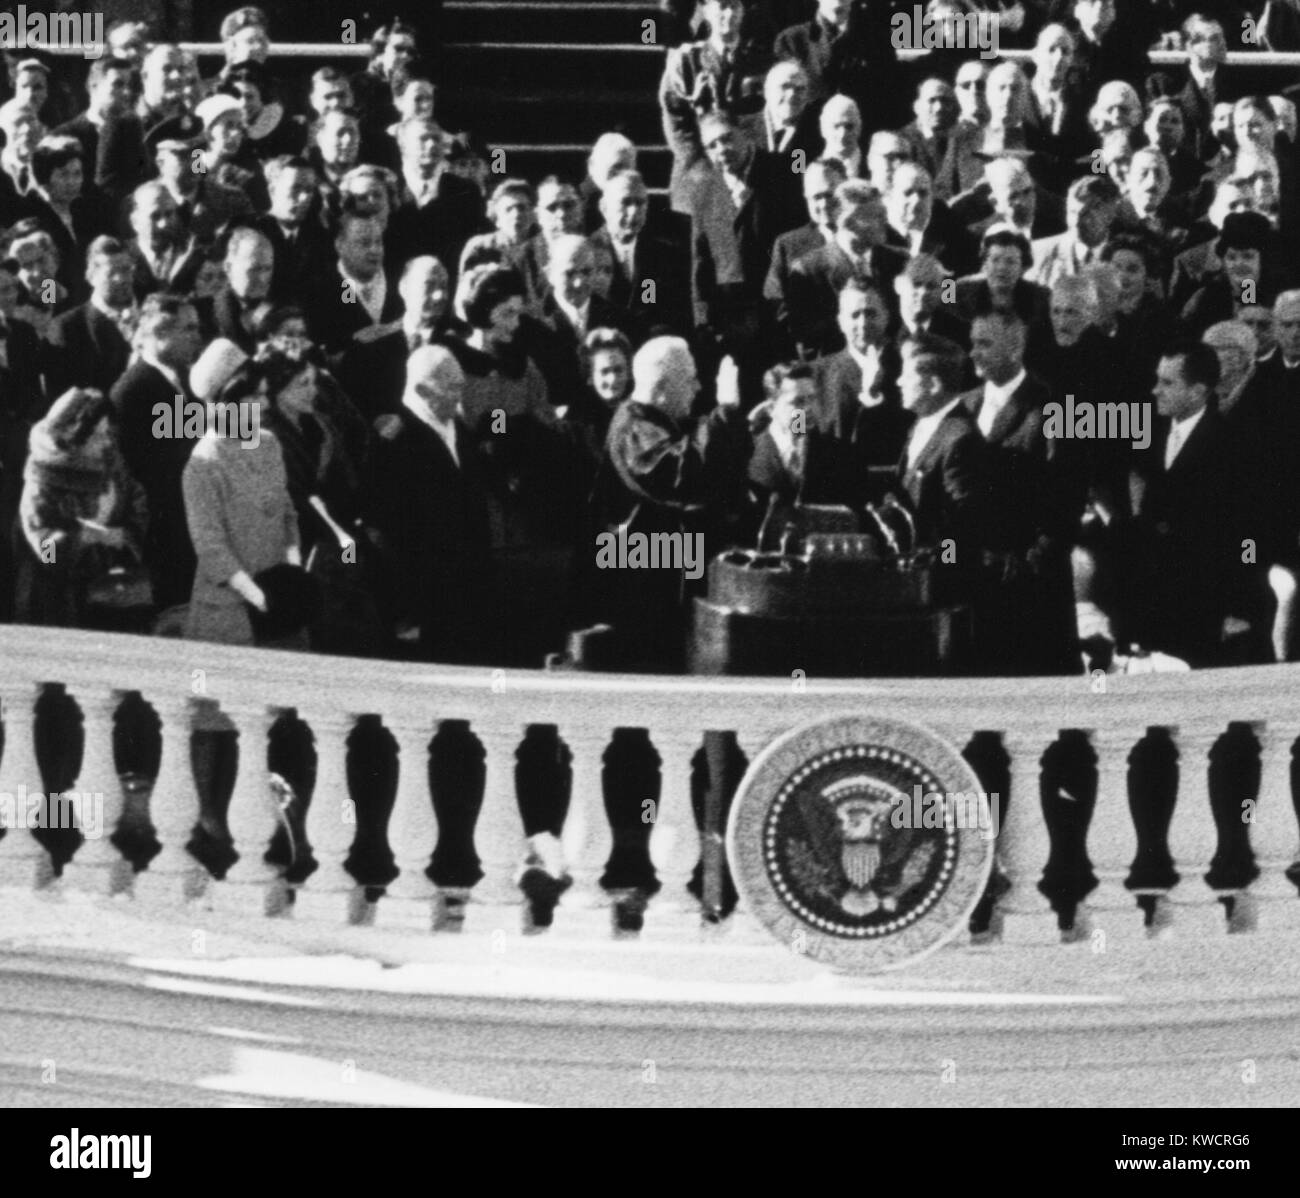 President John Kennedy takes the oath of office administered by Chief Justice Earl Warren. Jan. 20, 1961. - (BSLOC - Stock Image